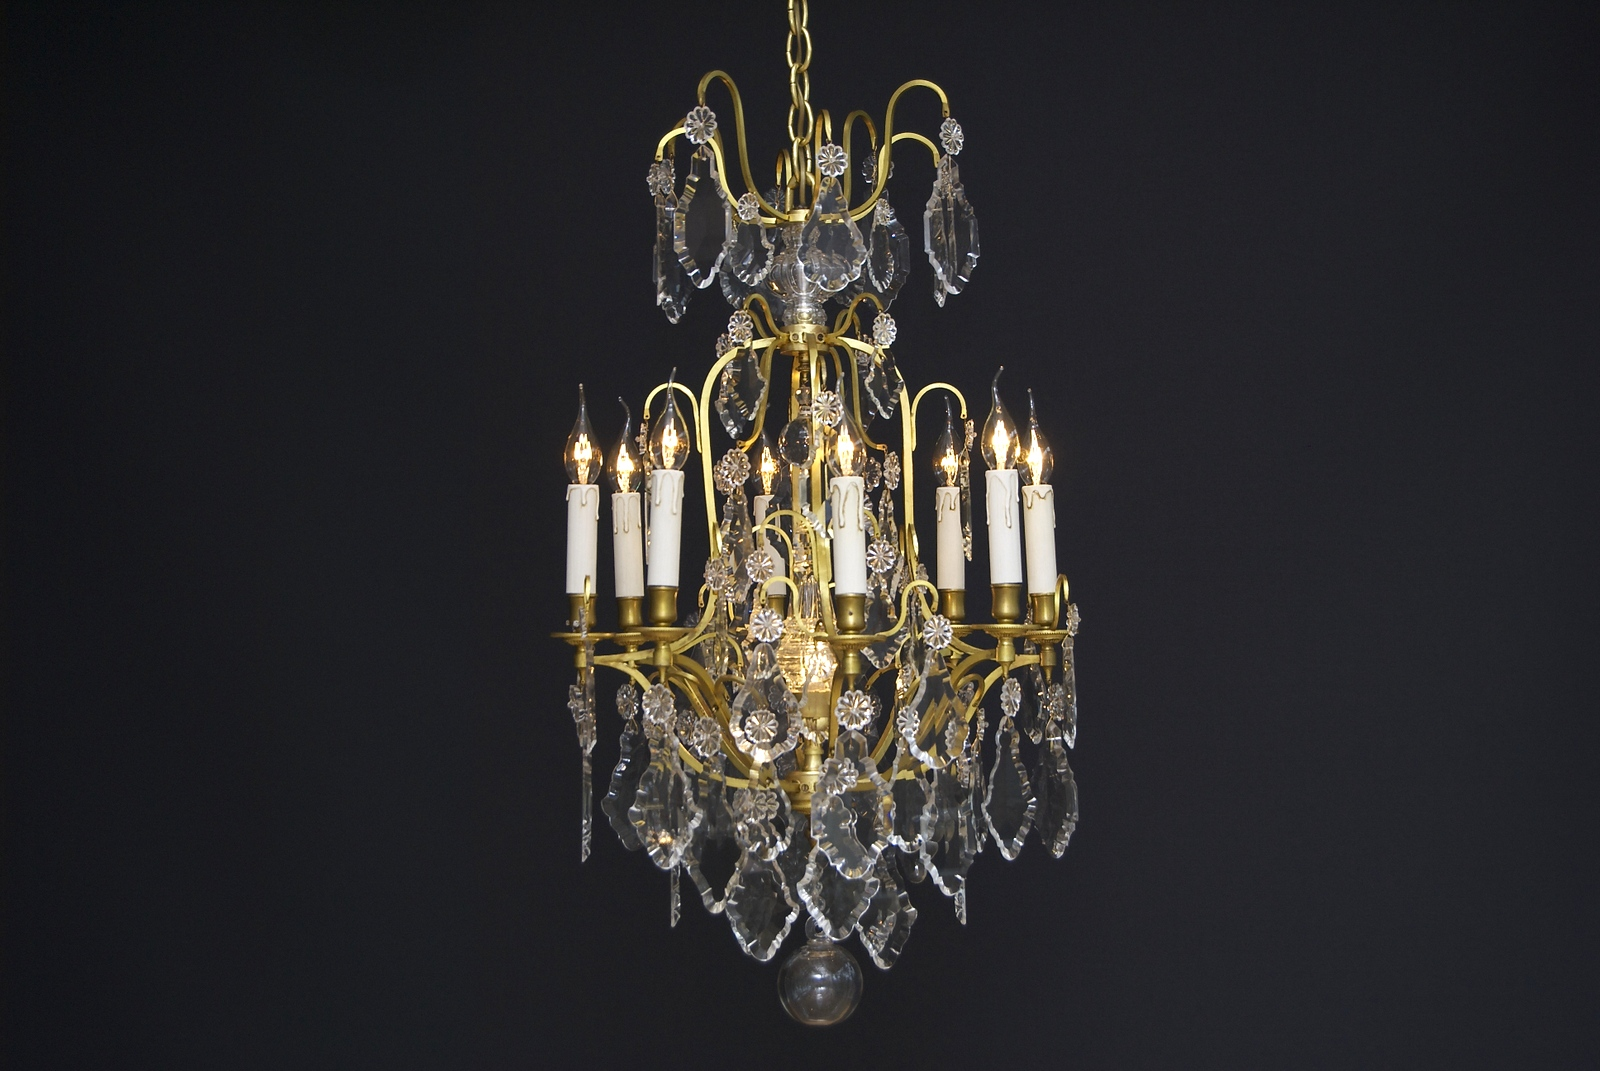 A 20th century French crystal chandelier with 9 light